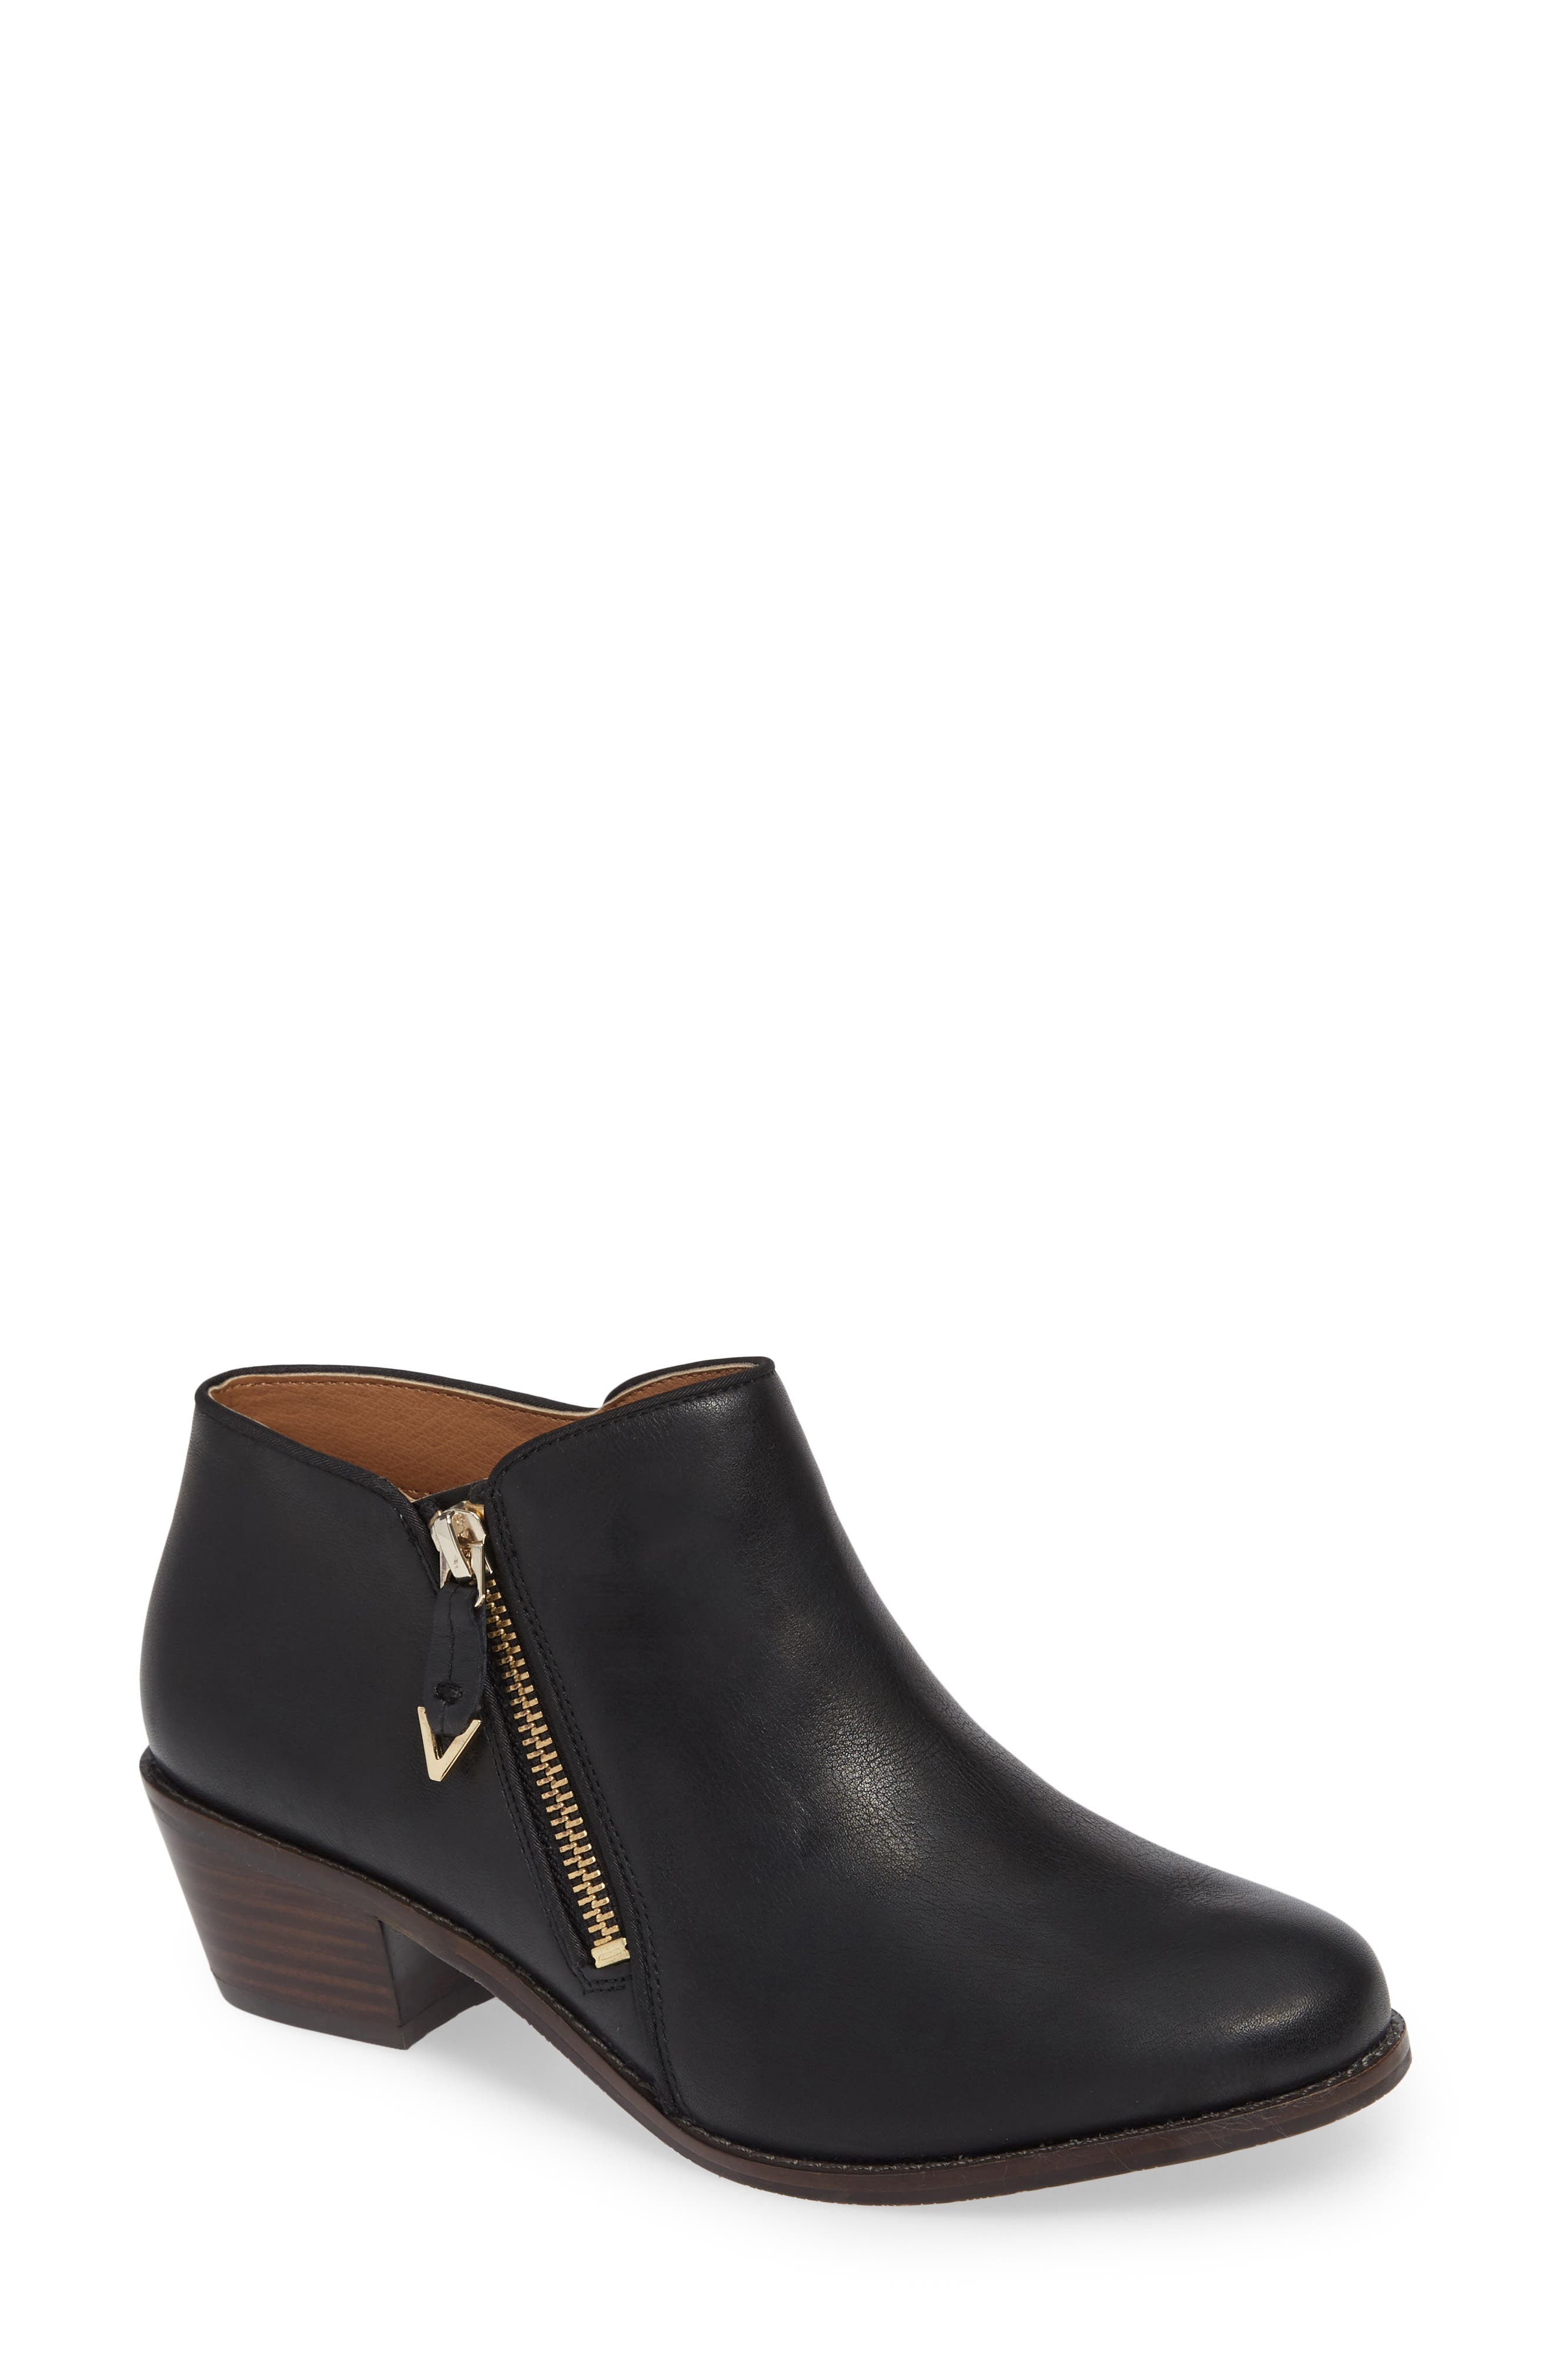 Jolene Bootie,                         Main,                         color, BLACK LEATHER